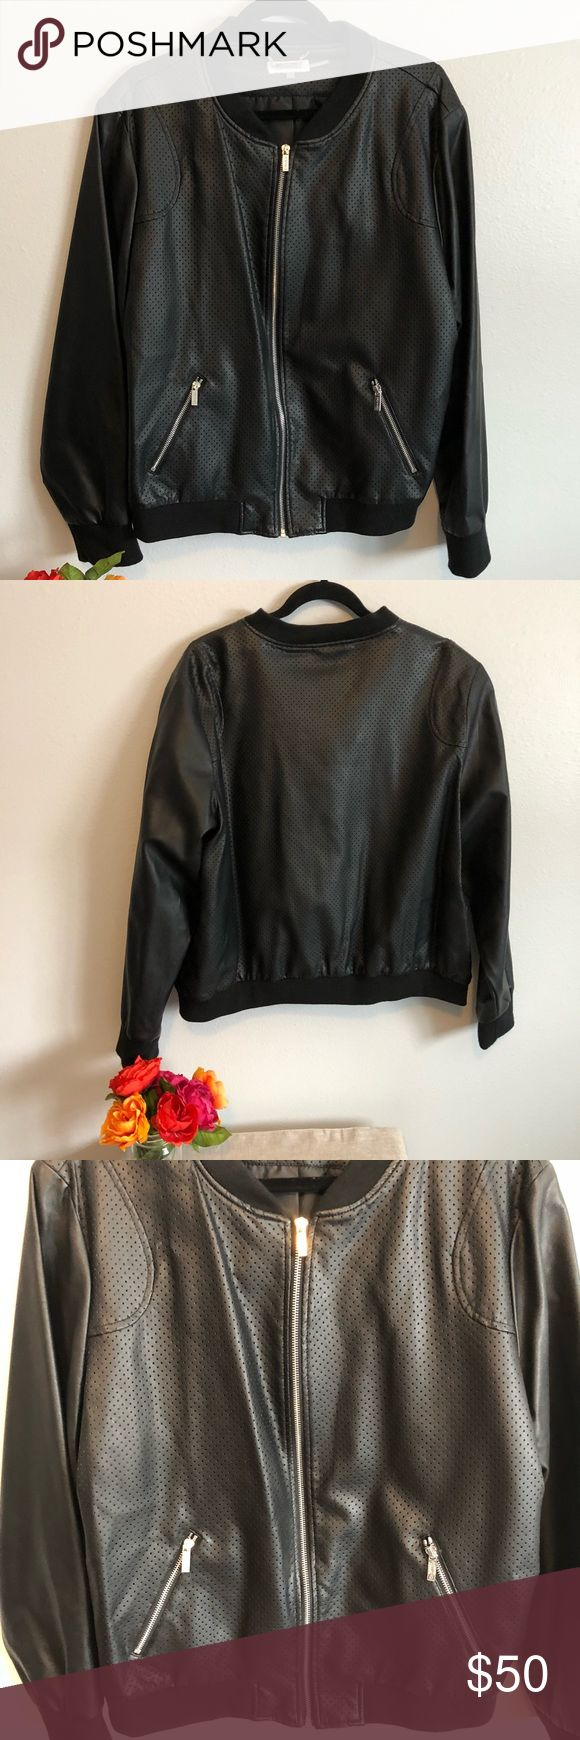 NWOT Calvin Klein Black Bomber Jacket Awesome Jacket!  Never worn! Front and back are patterned and sleeves are solid!  Size 2X, chest 24.5, sleeve 30, length 25 inches Calvin Klein Jackets & Coats Utility Jackets